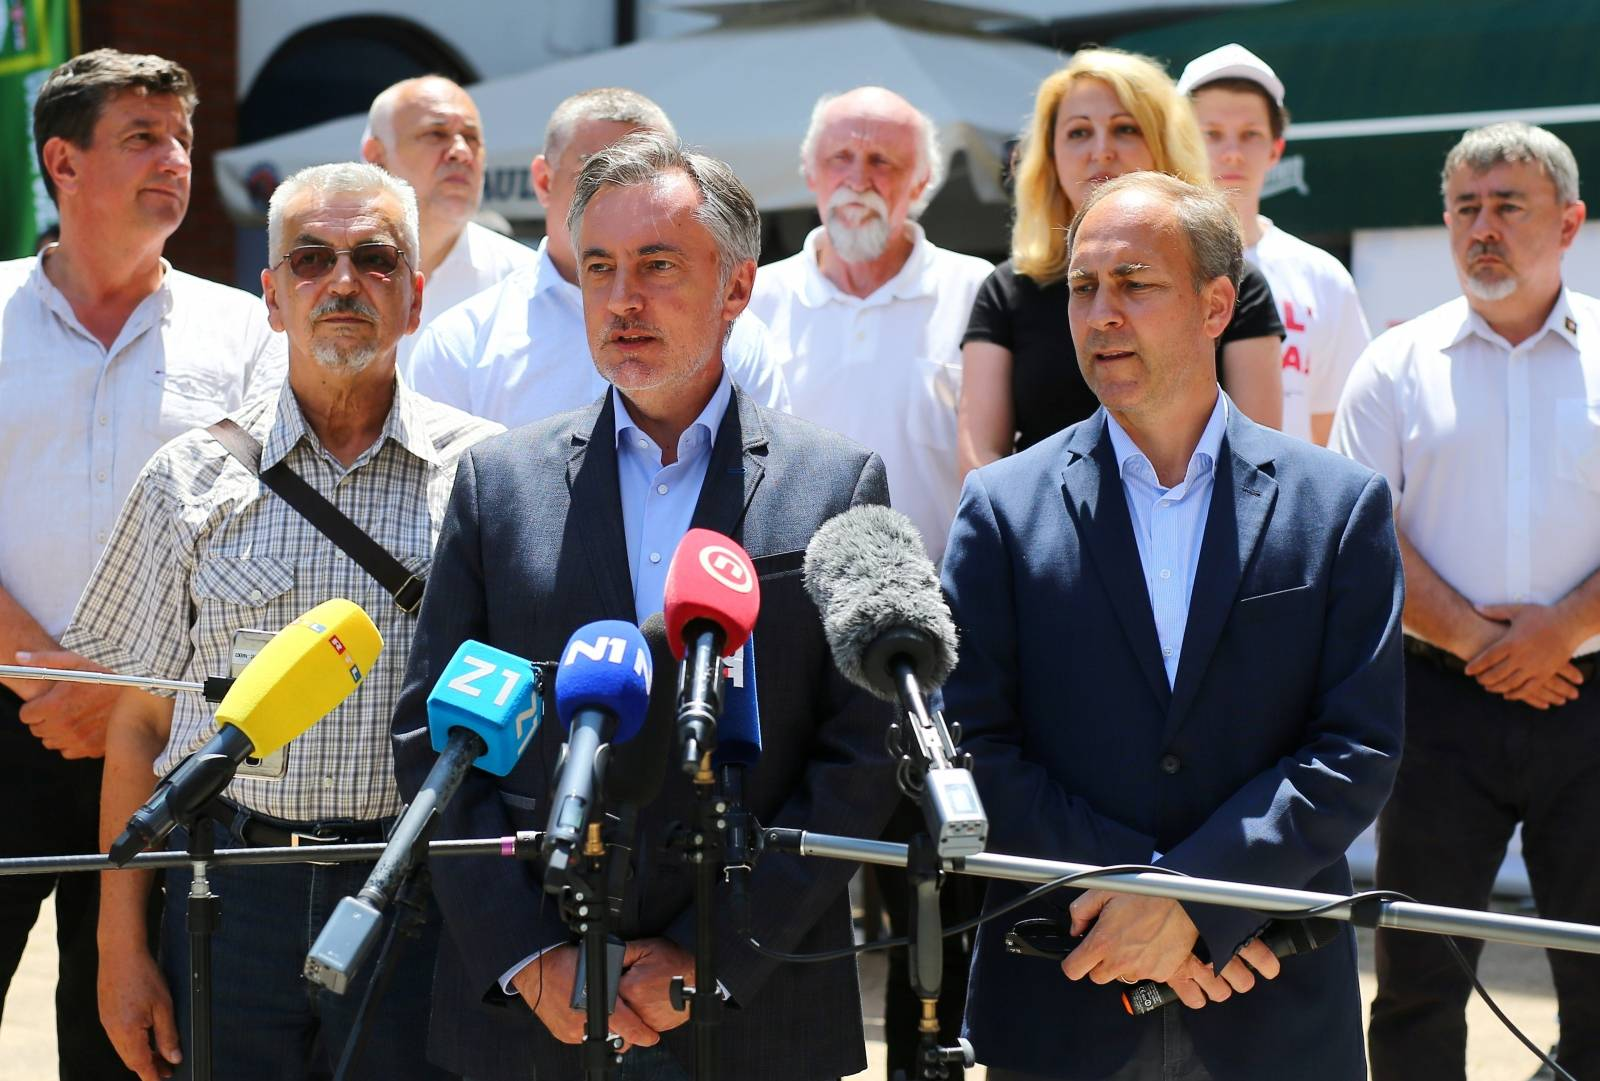 Miroslav Skoro, leader of the Homeland Movement party, talks to media during an election rally in Velika Gorica